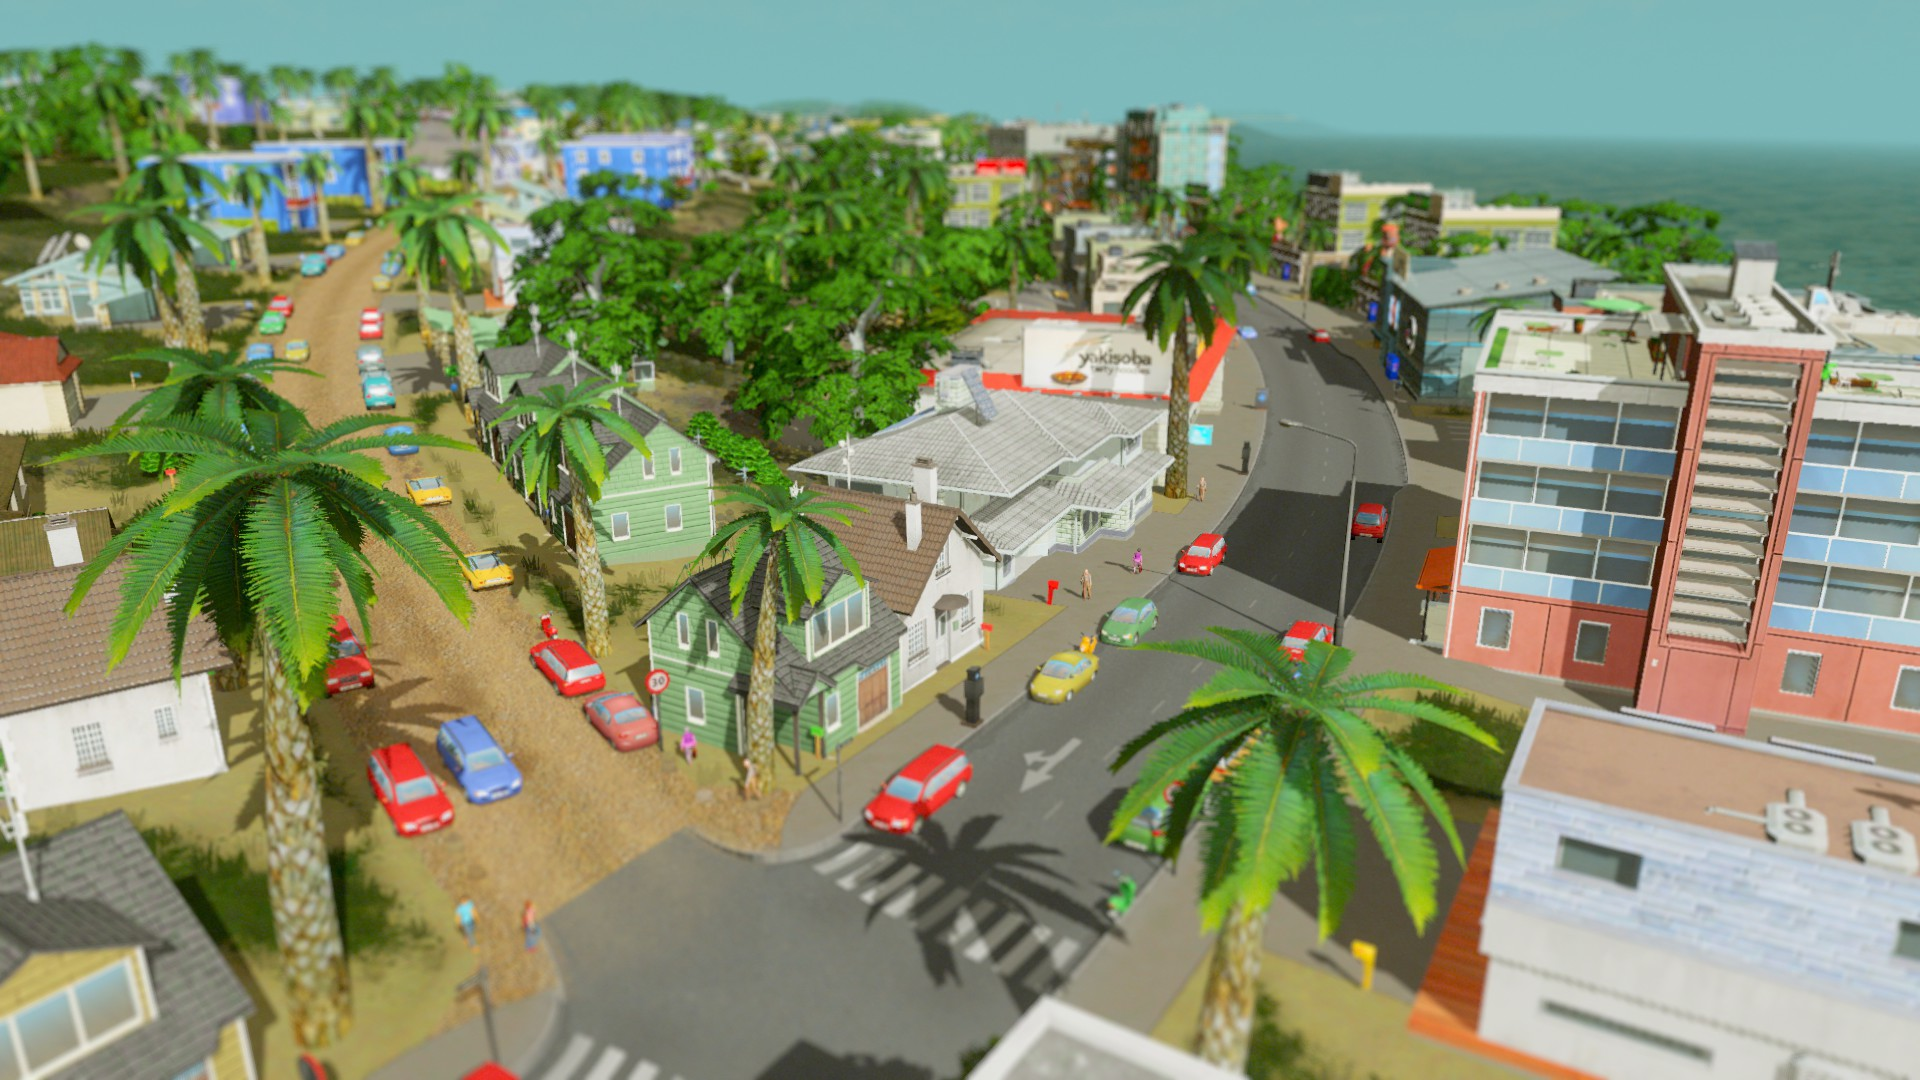 download cities skylines deluxe edition v1.8.0.f3 + all dlcs repack - fitgirl singlelink iso rar part google drive direct link uptobox ftp link magnet torrent thepiratebay kickass alternative